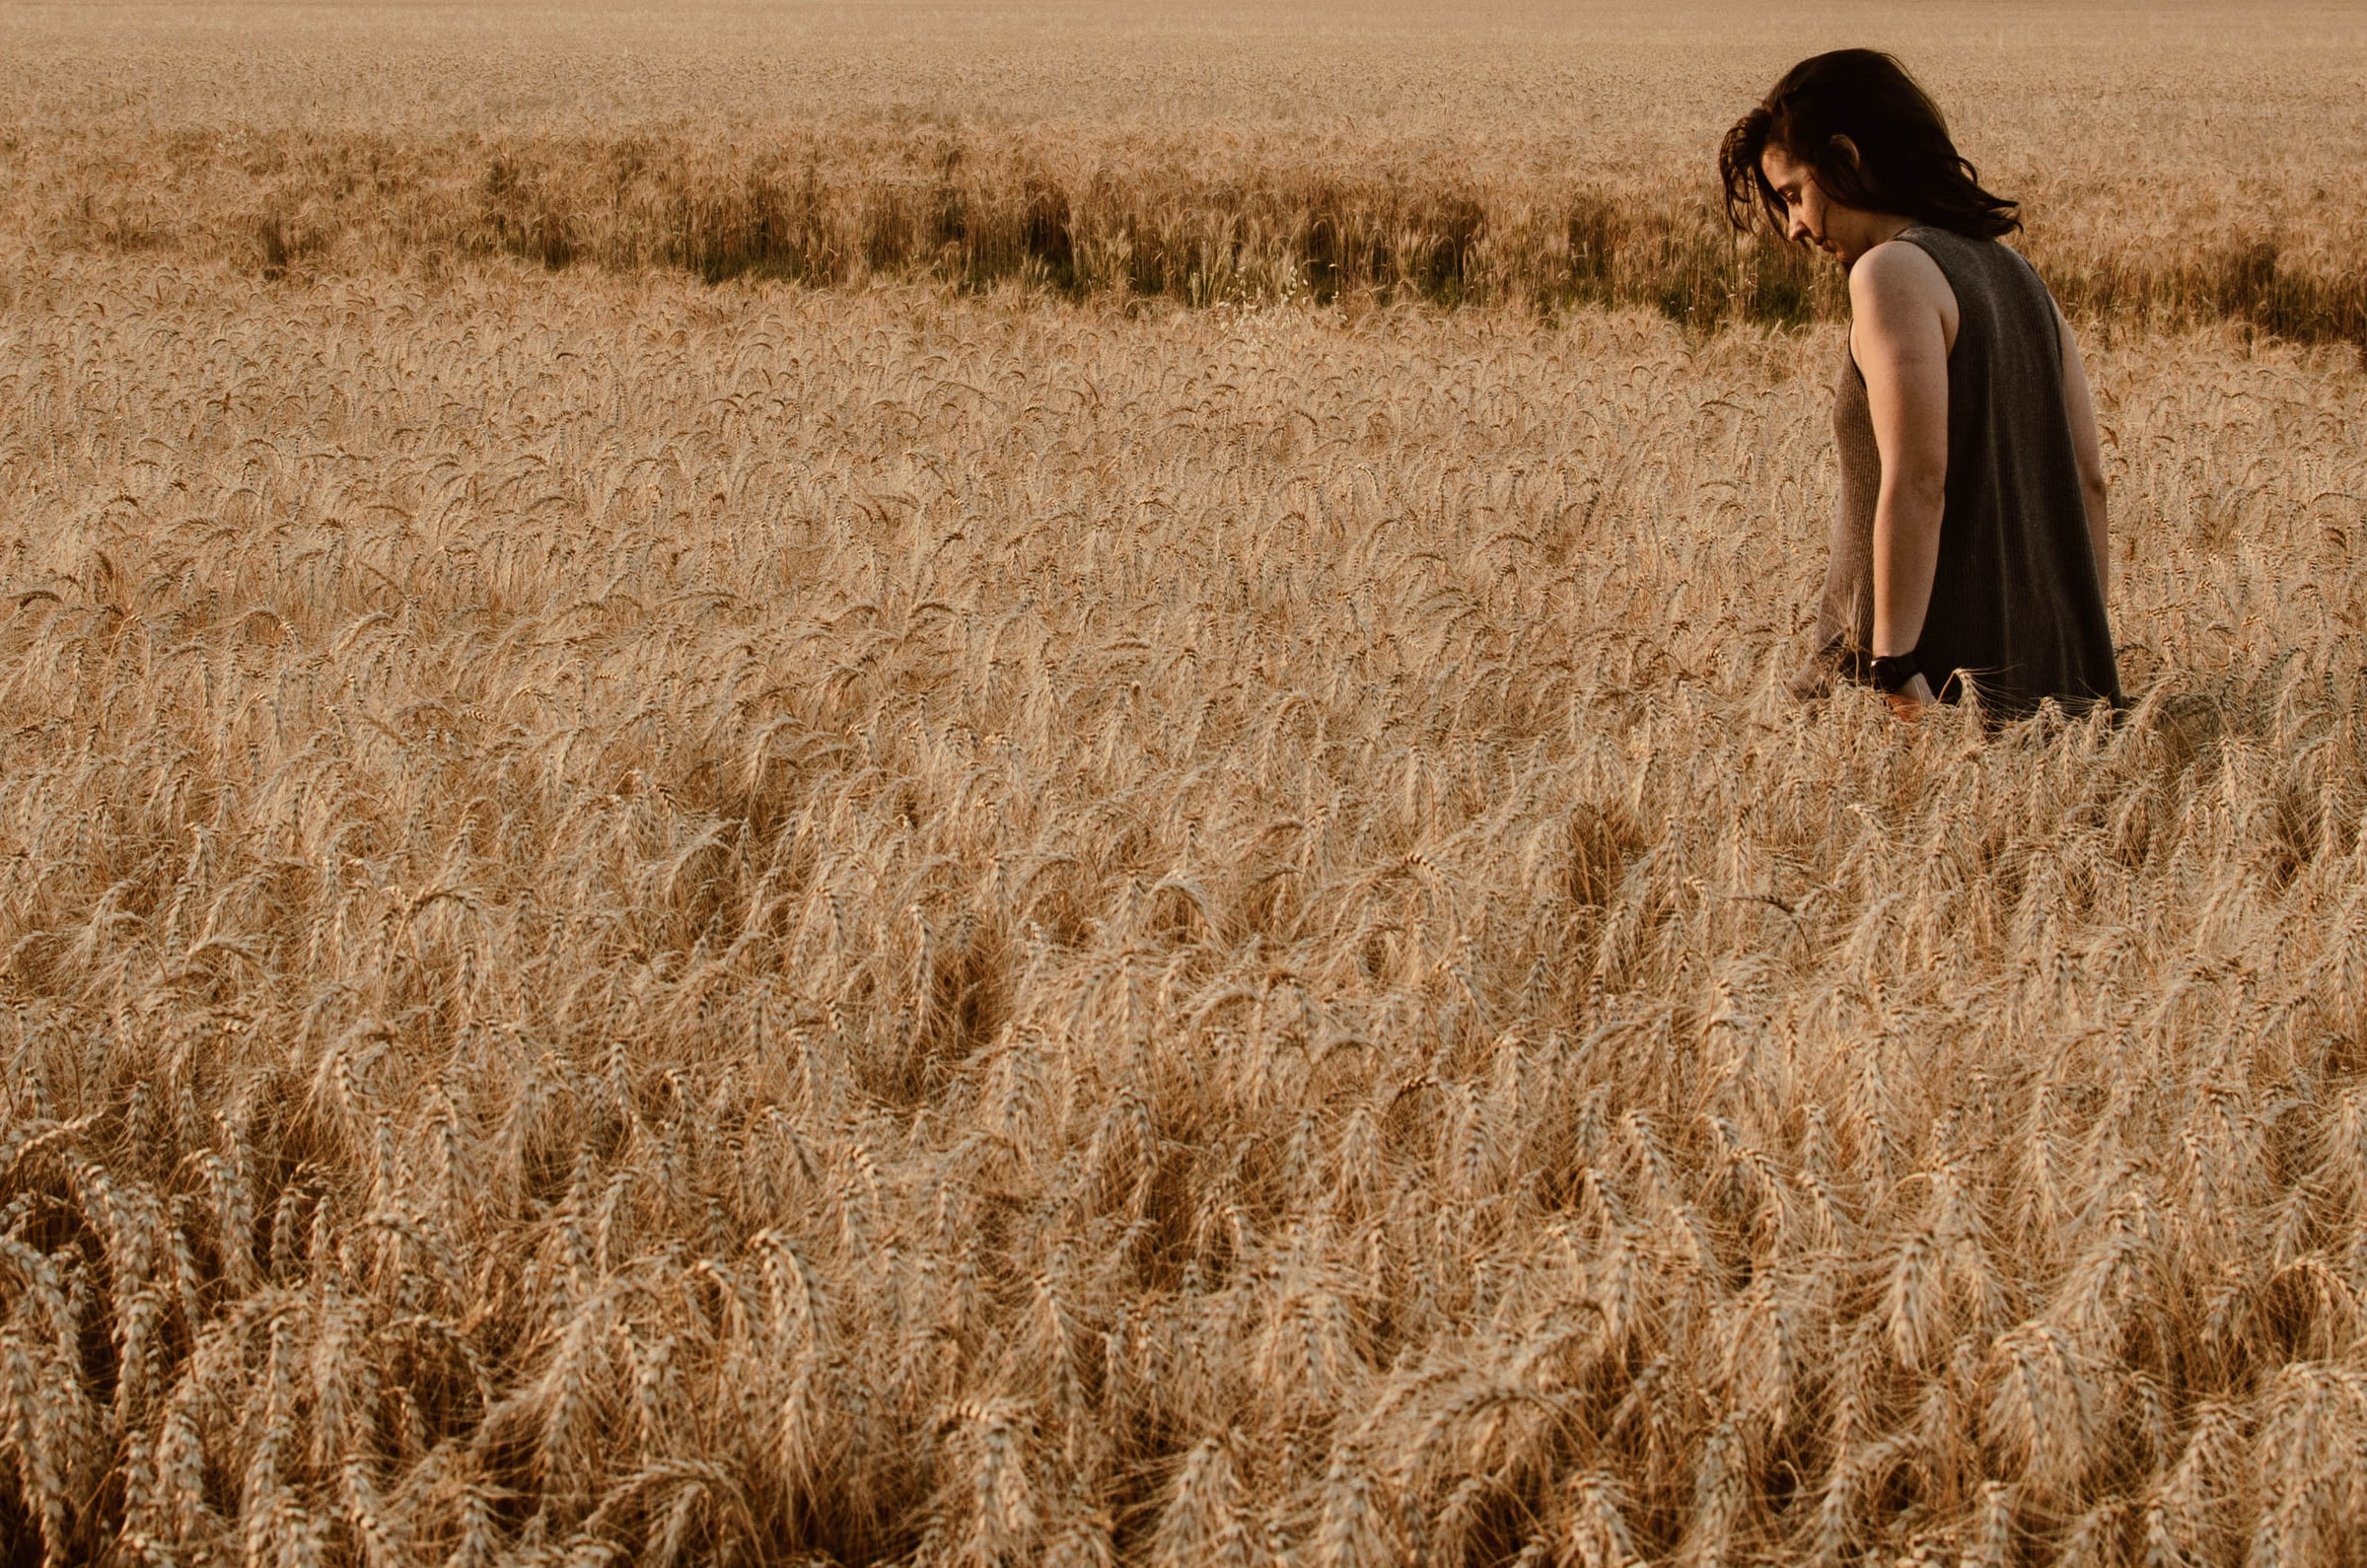 Wheat and Weeds Parable, Sermon